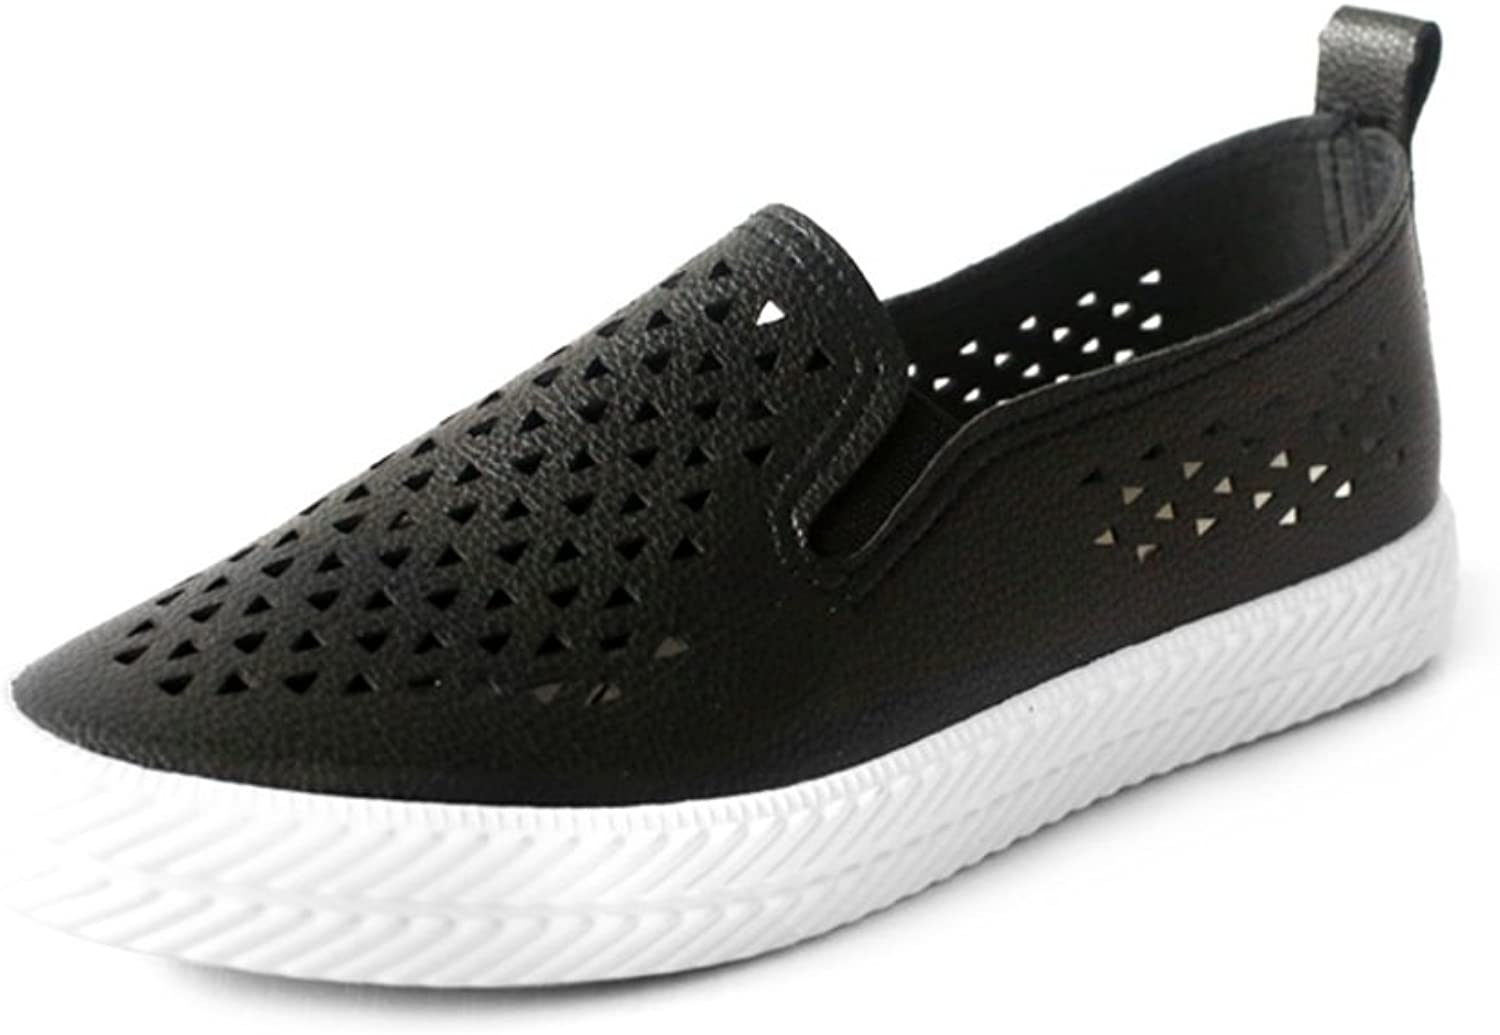 Hollow microfiber leather shoes Breathable wild casual loafers Low to help a pedal lazy shoes tunnel